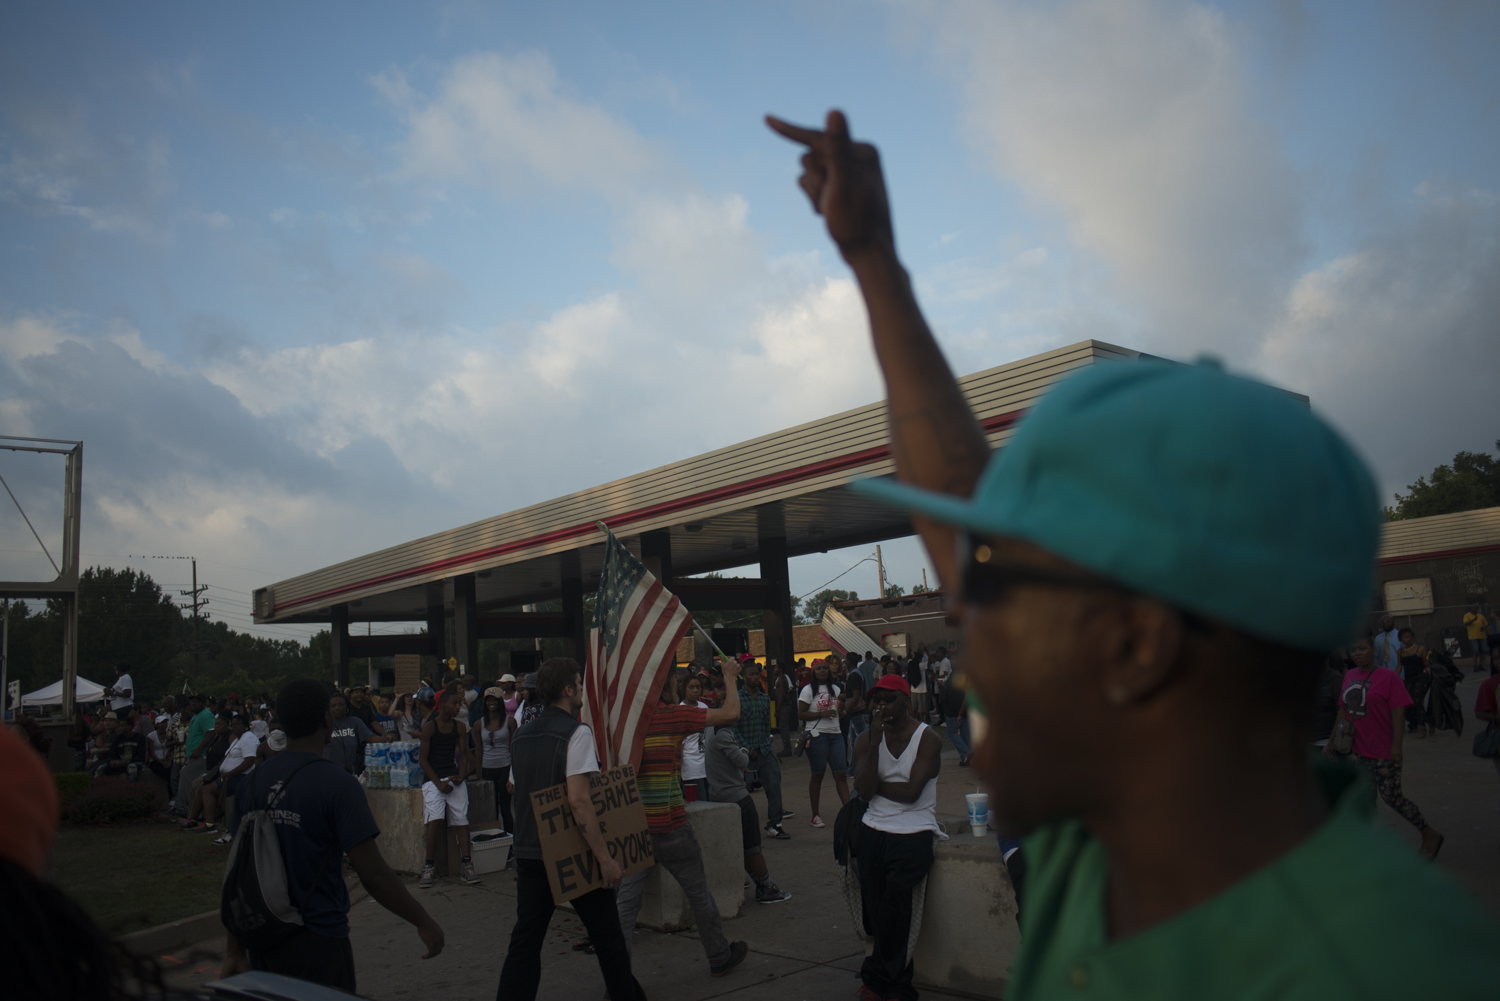 Protestors demonstrate against the killing of Michael Brown by police officer Darren Wilson in Ferguson, Mo. on August 17, 2014.